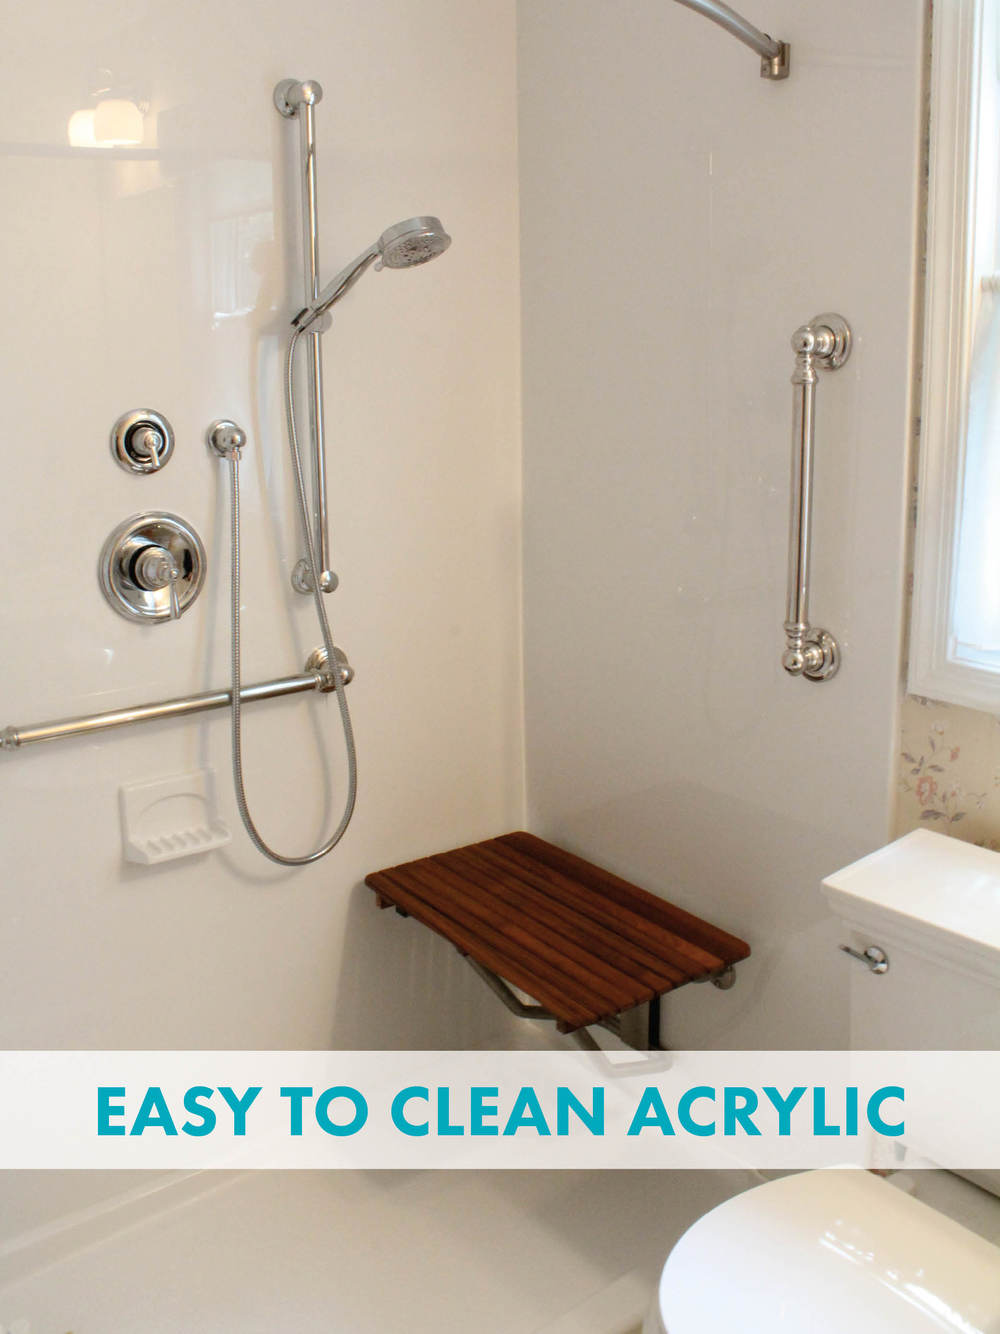 easy to clean acrylic.jpg